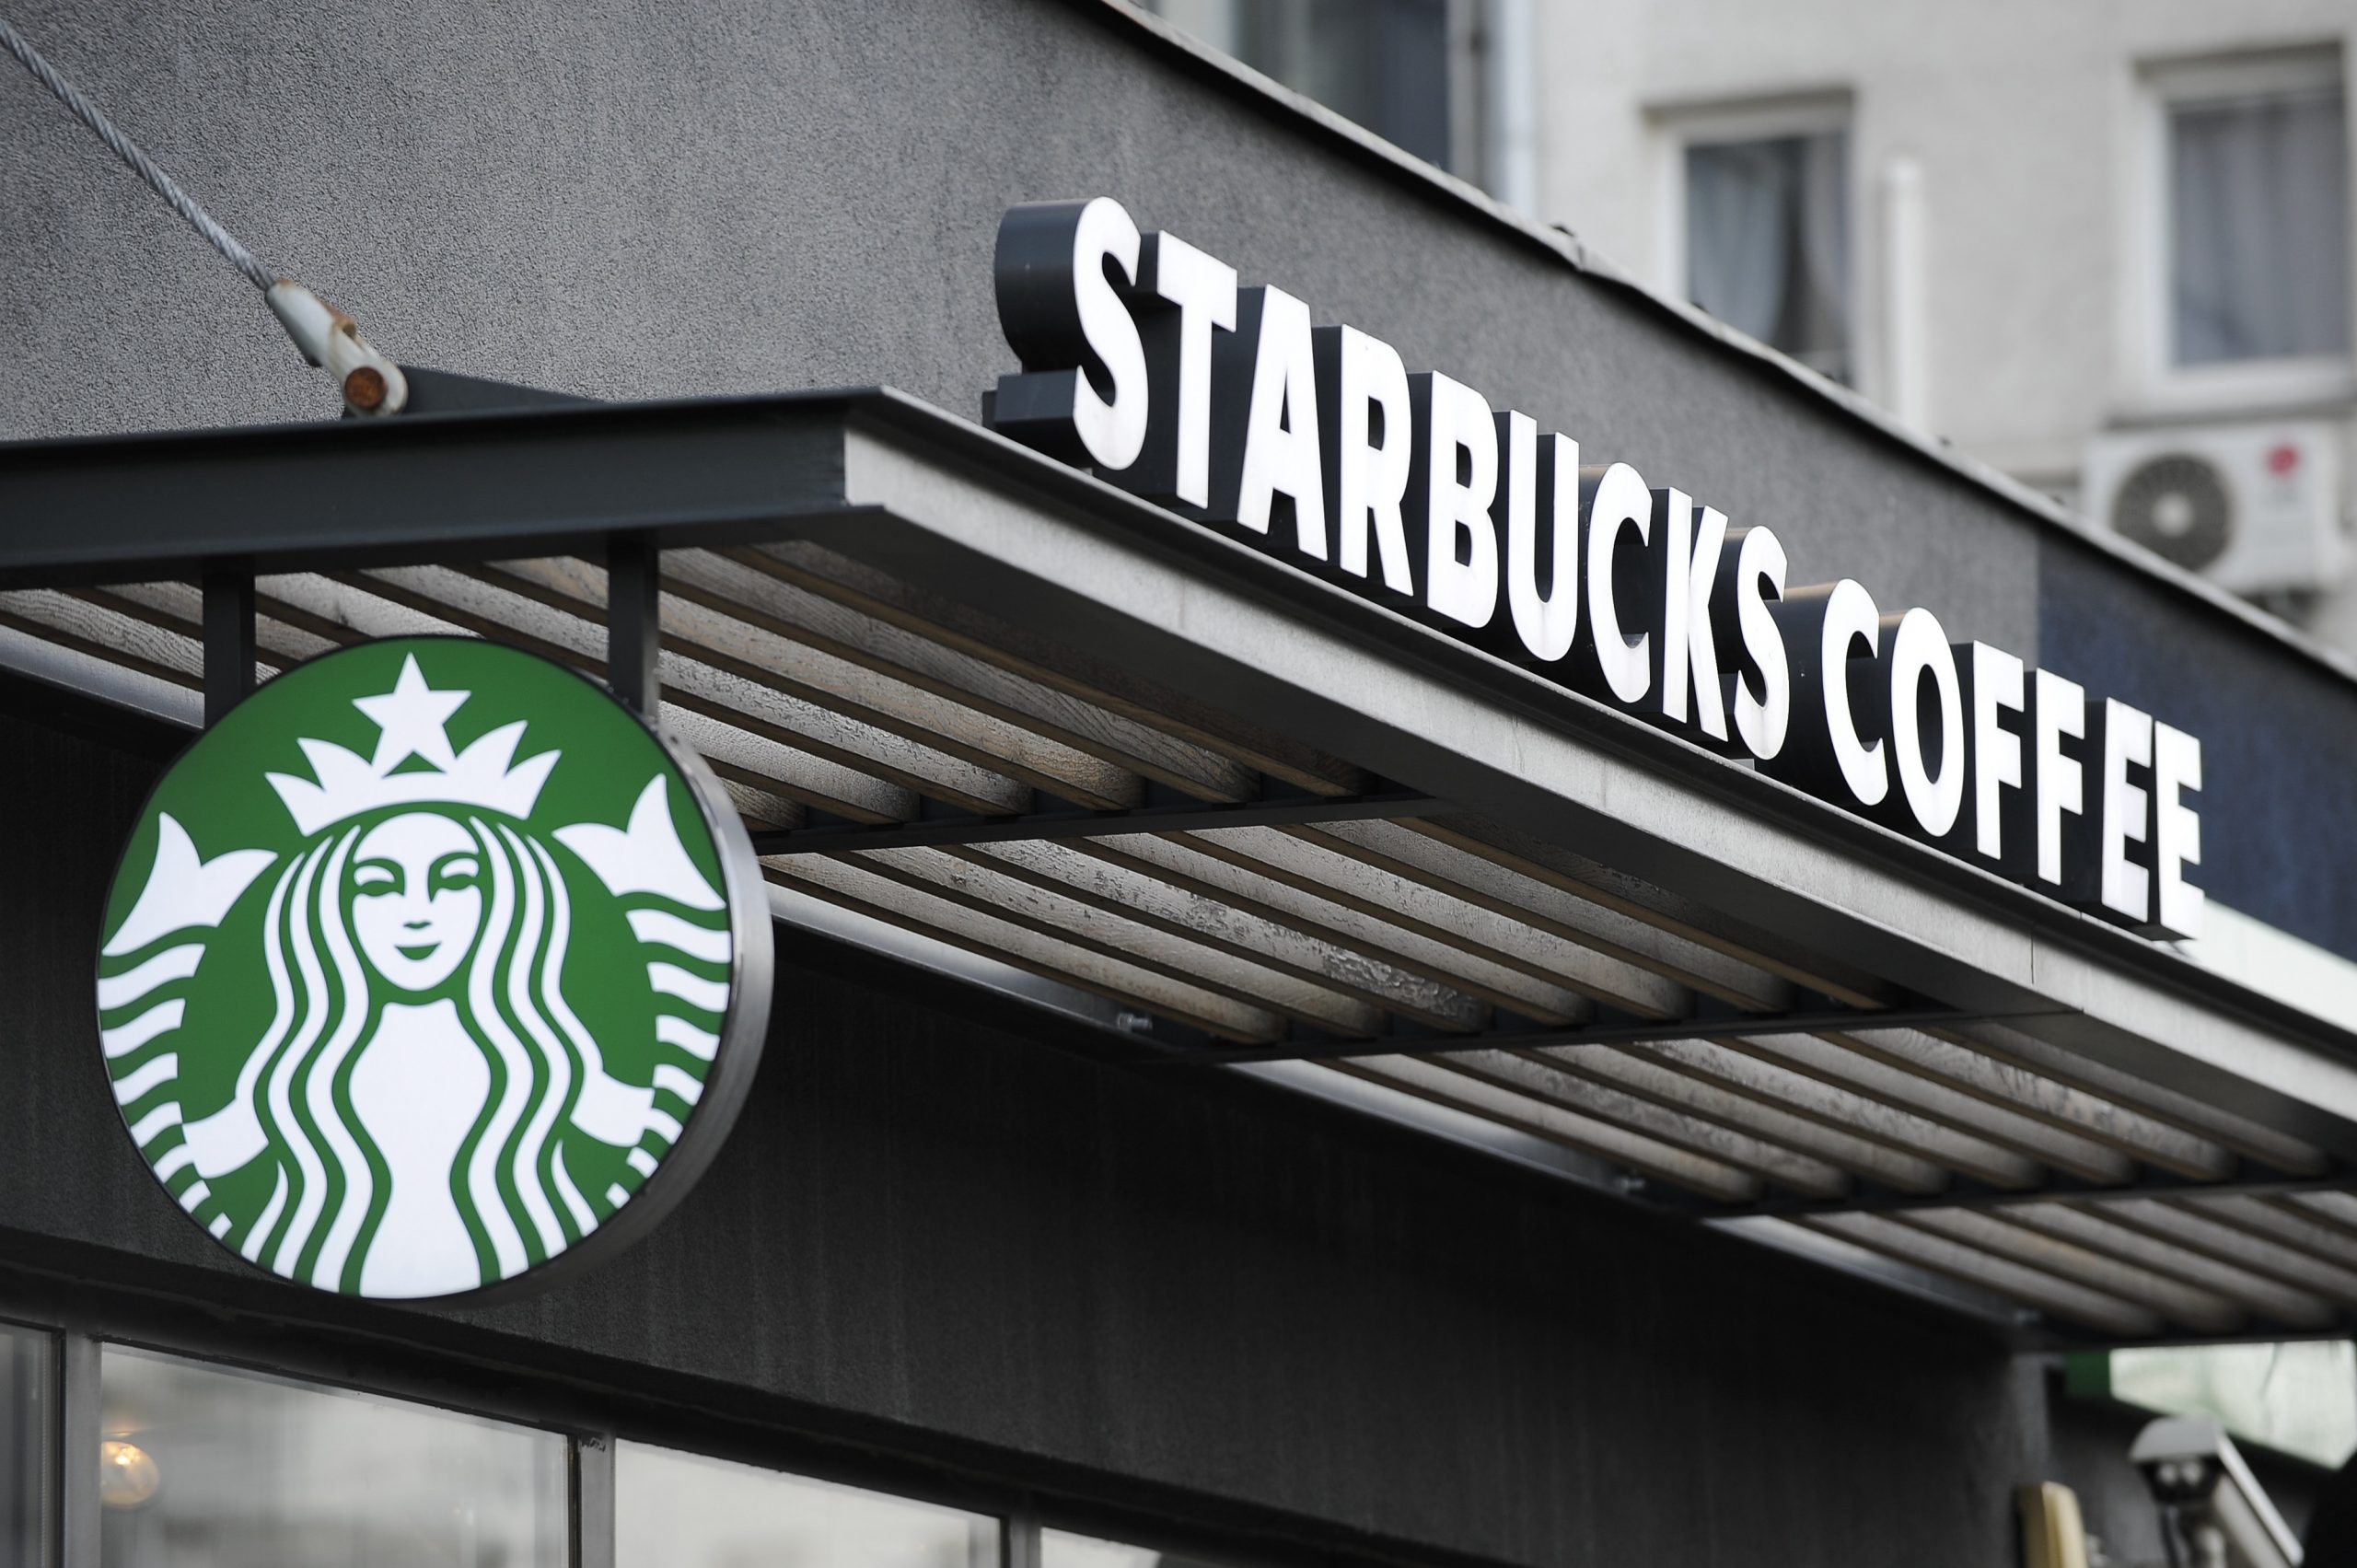 The Story Behind The Starbucks Coffee